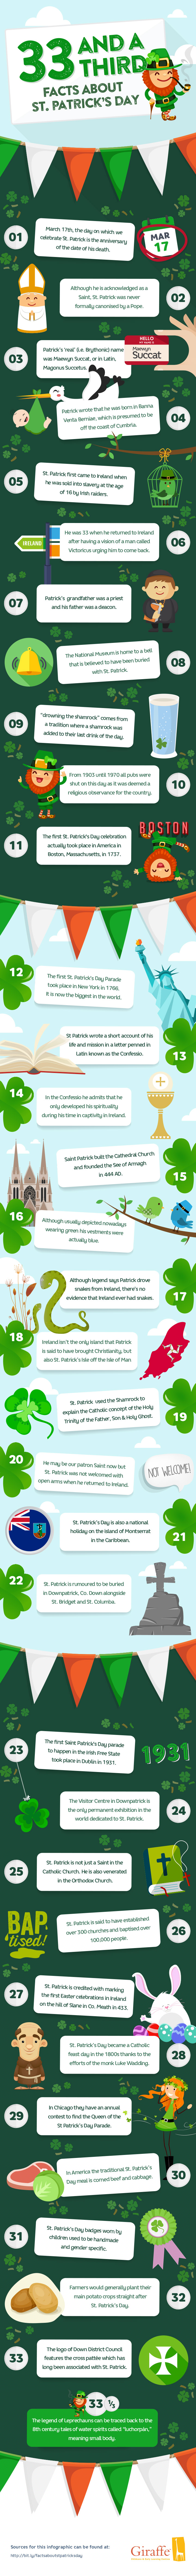 33-and-a-third-facts-about-st-patricks-day